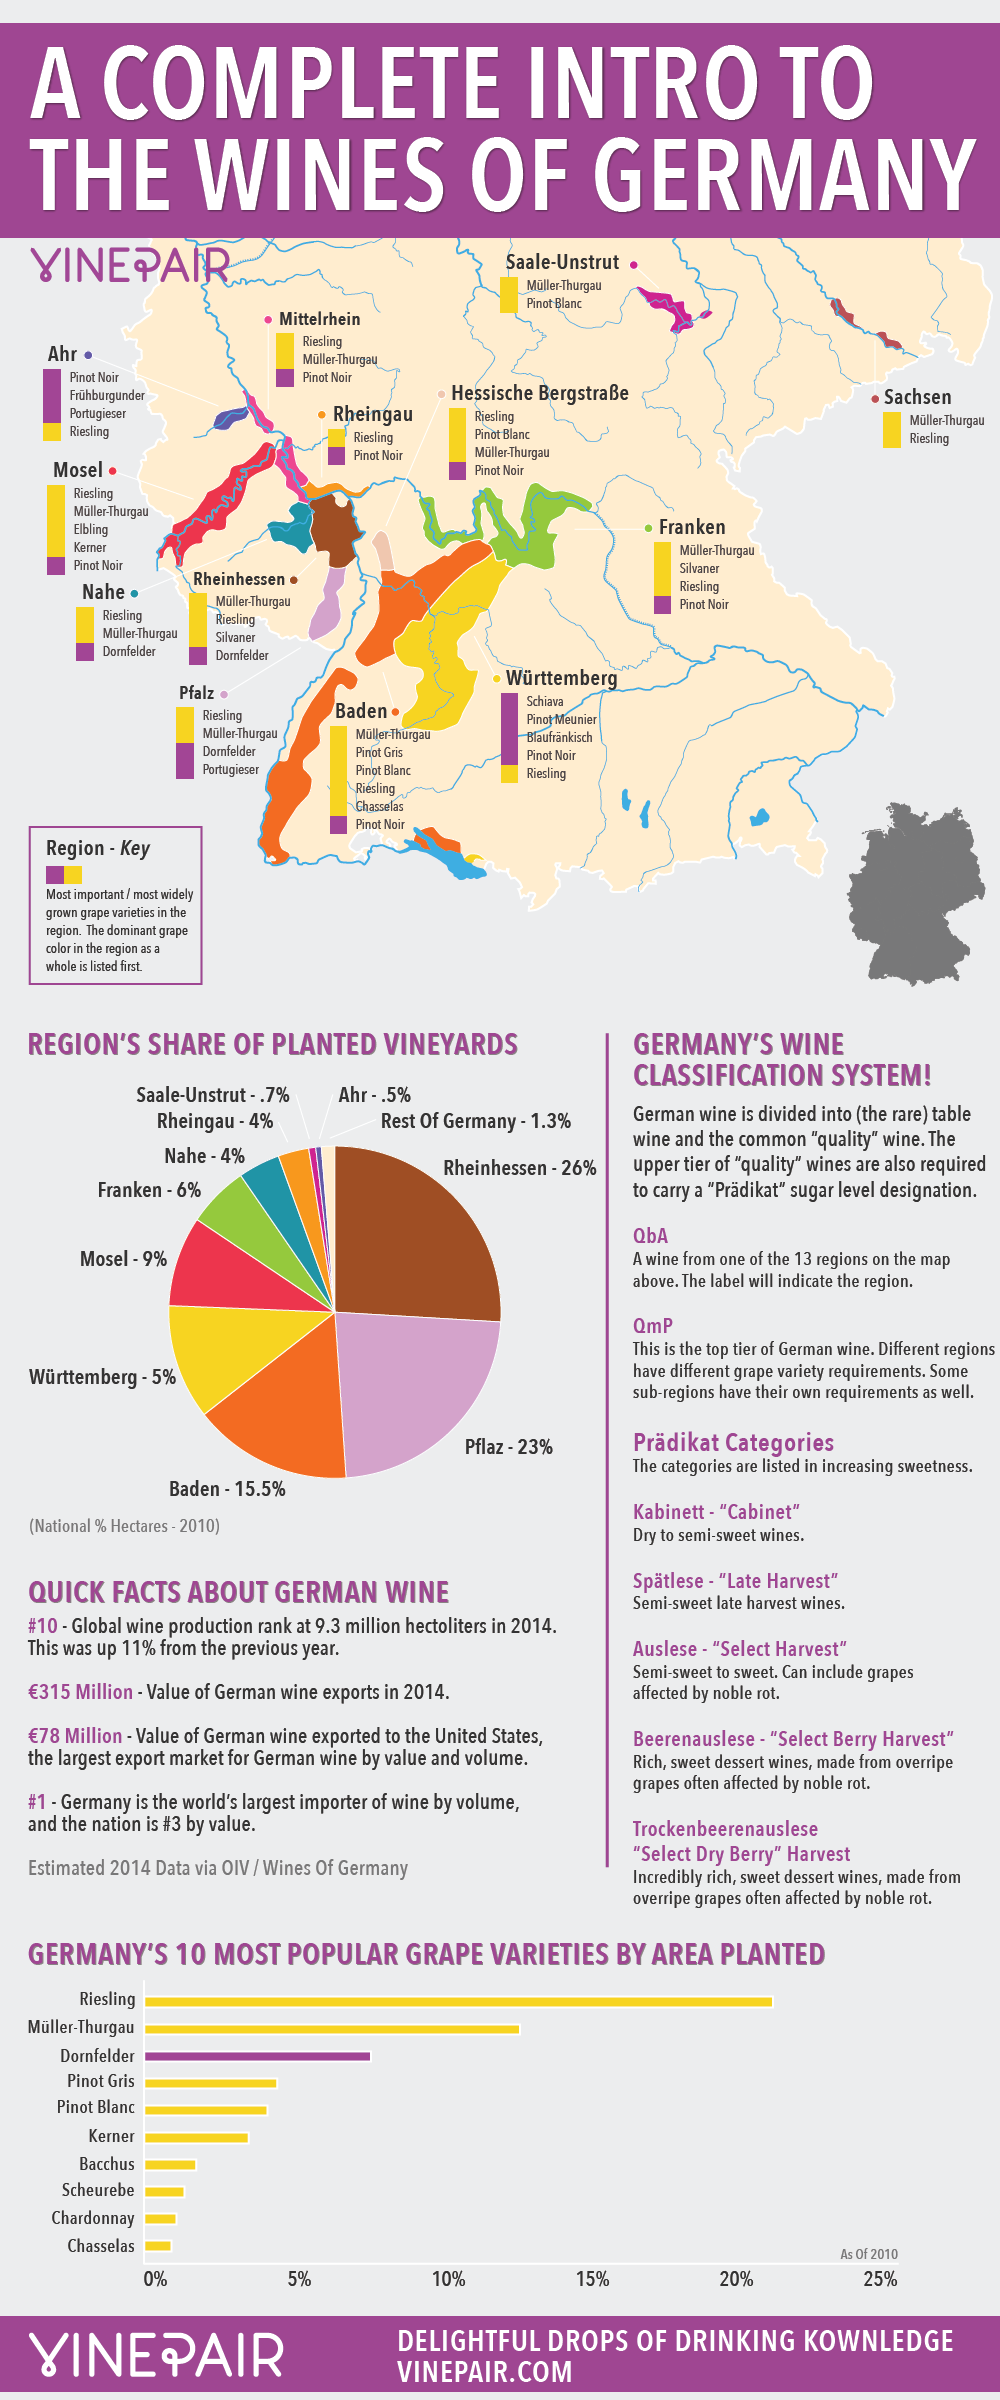 A Complete Introduction And Guide To The Wines Of Germany Including MAP!